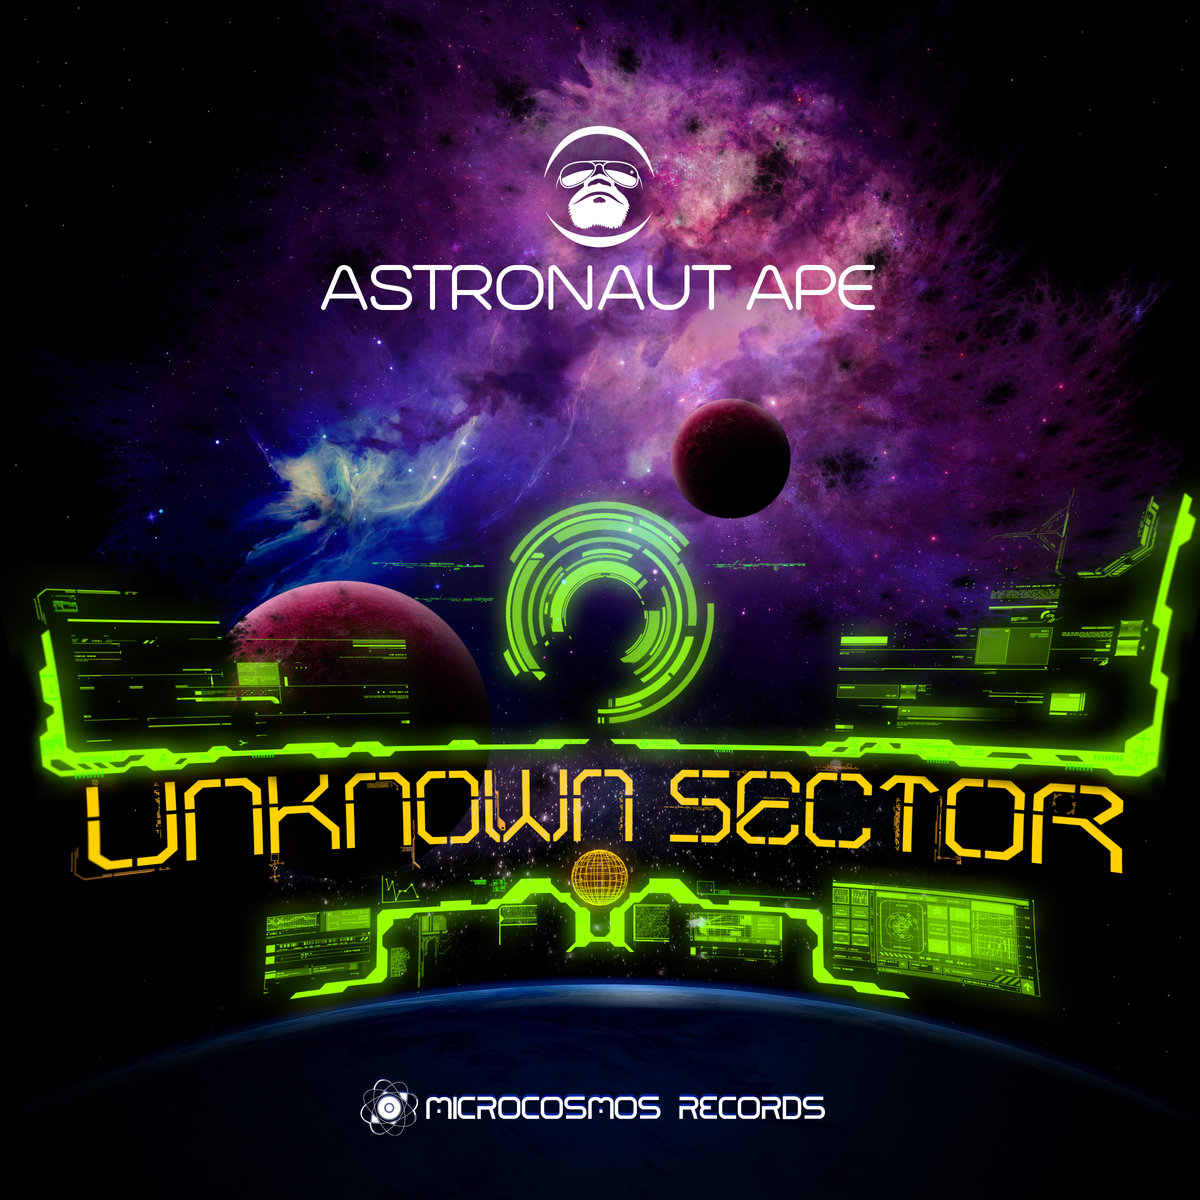 Astronaut Ape - Starship Eden @ 'Unknown Sector' album (ambient, chill-out)